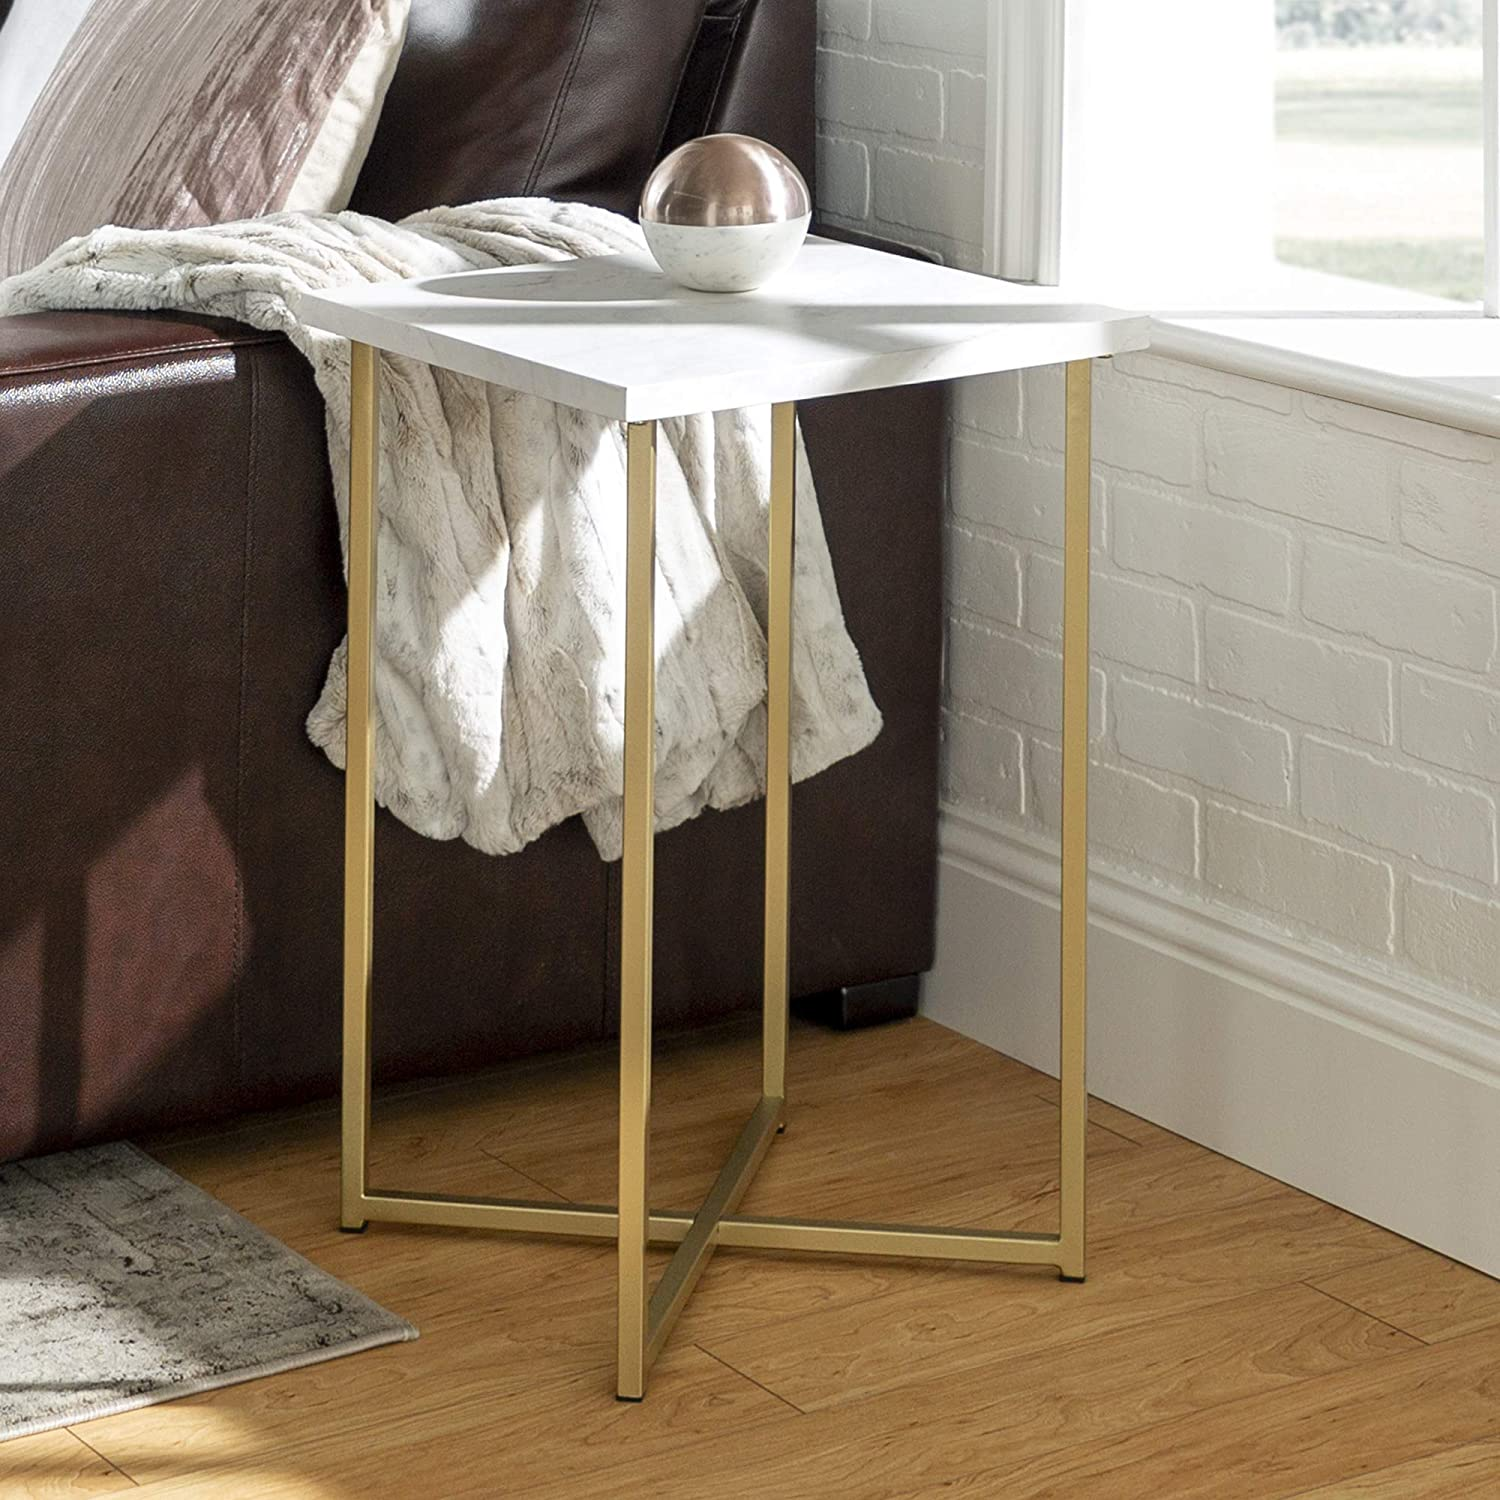 "WE Furniture AZF16LUXWMG Side Table 16"" Faux White Marble/Gold"